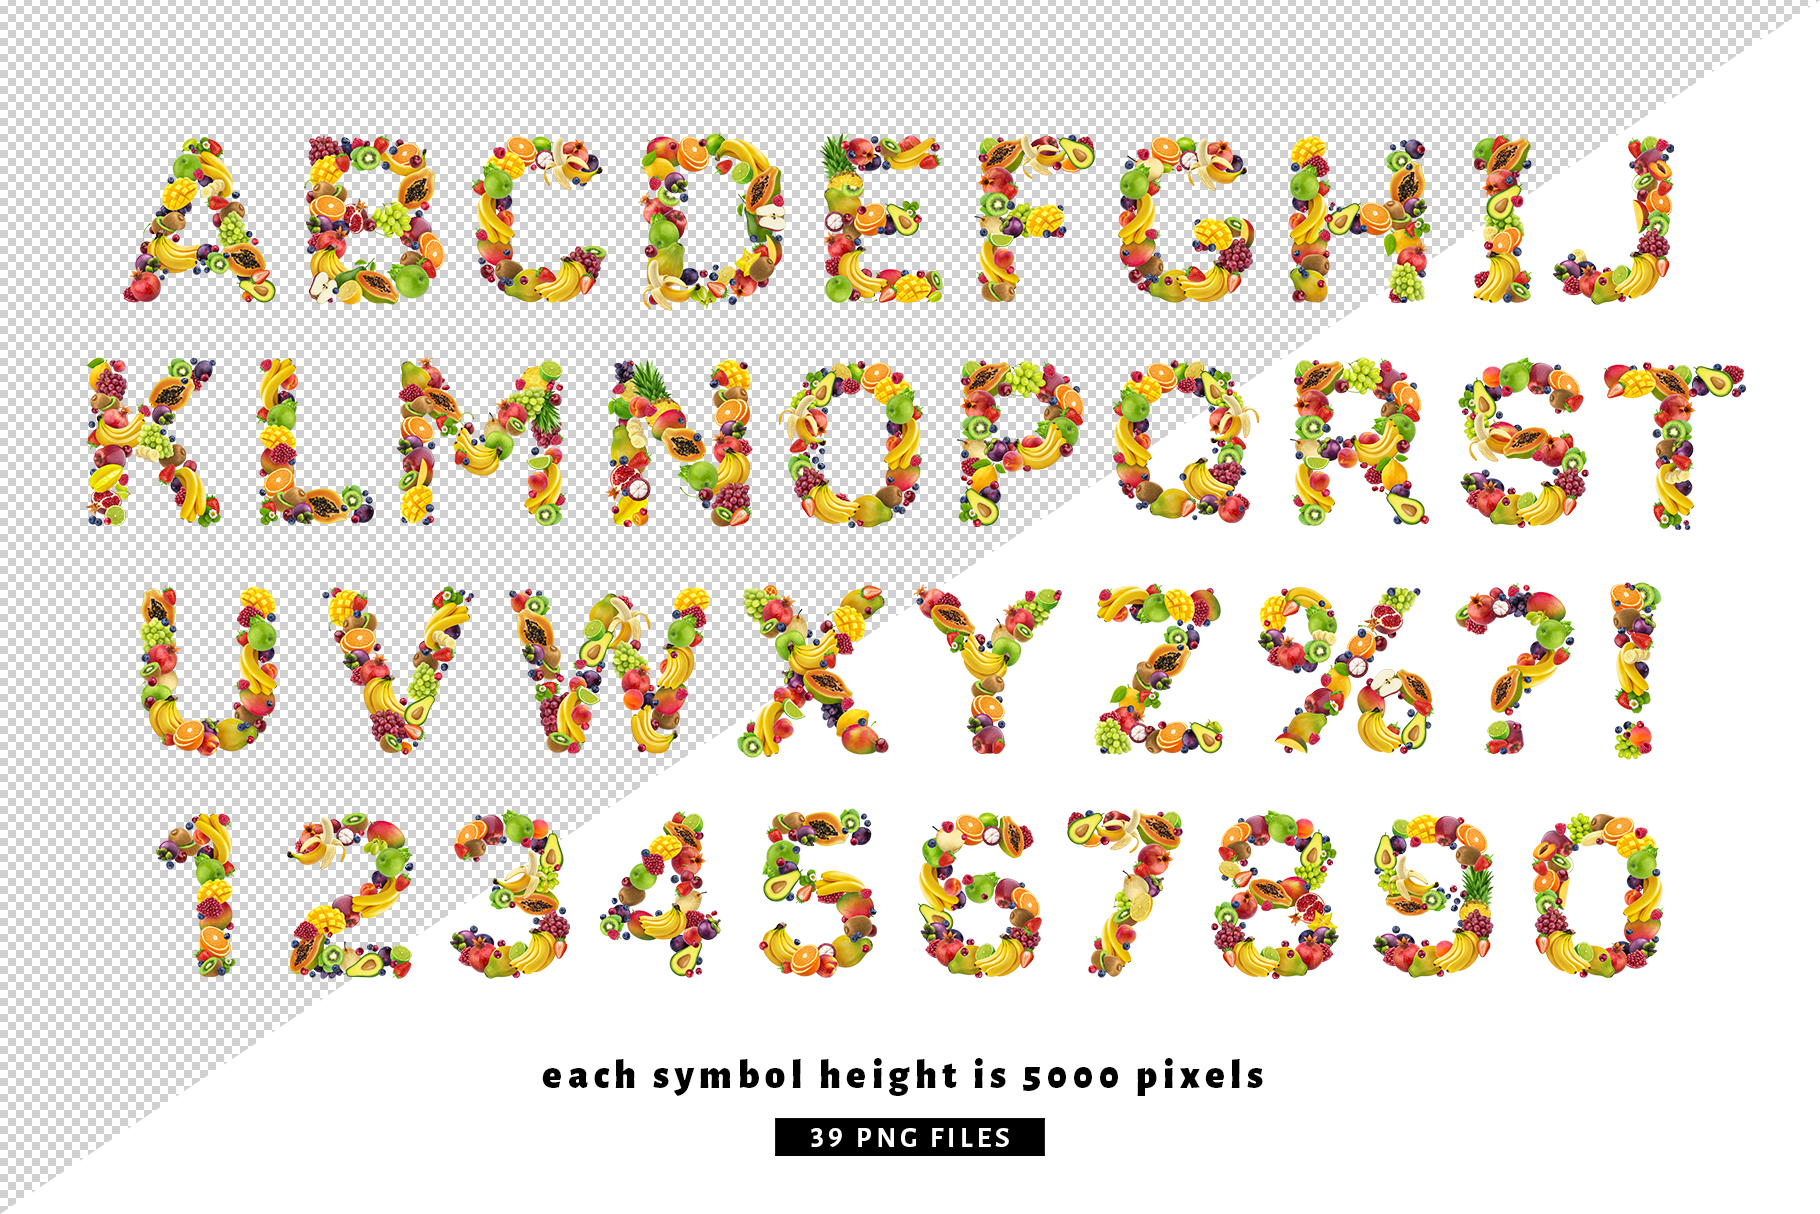 Fruits and berries alphabet, healthy alphabet example image 2